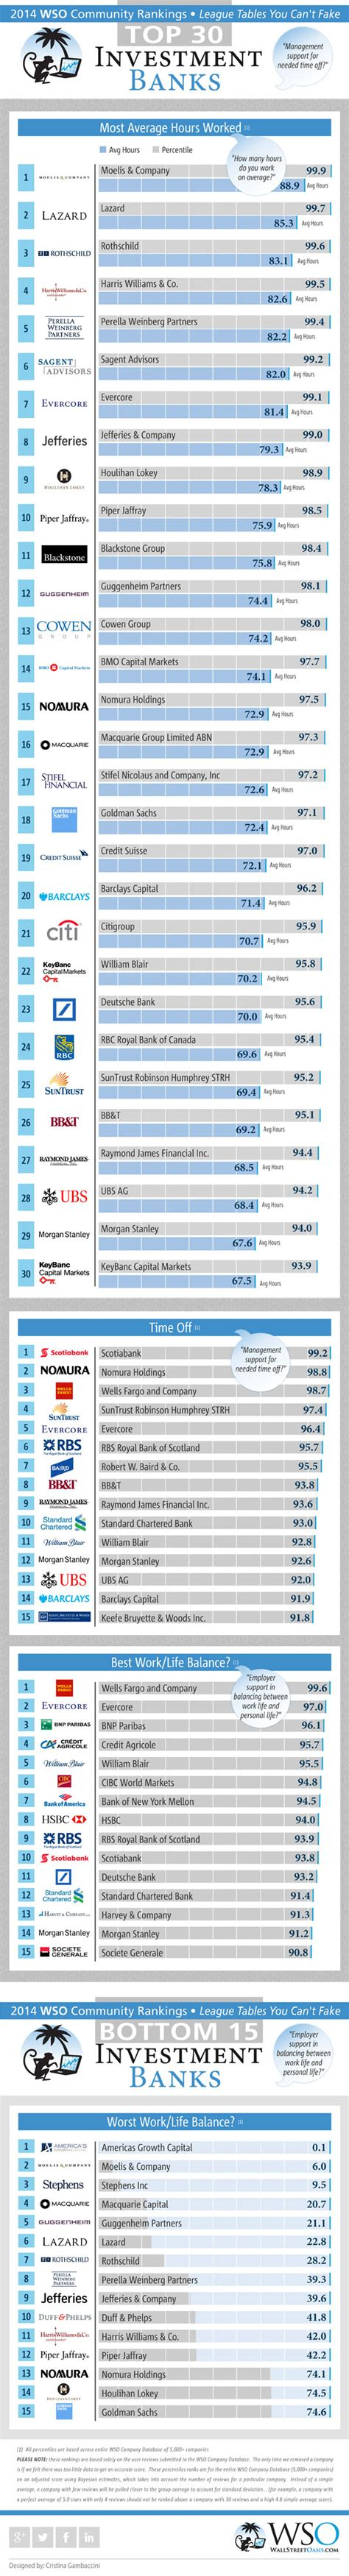 Mba Rankings Investment Banking by 2014 Wso Rankings For Investment Banks Lifestyle Part 8 O